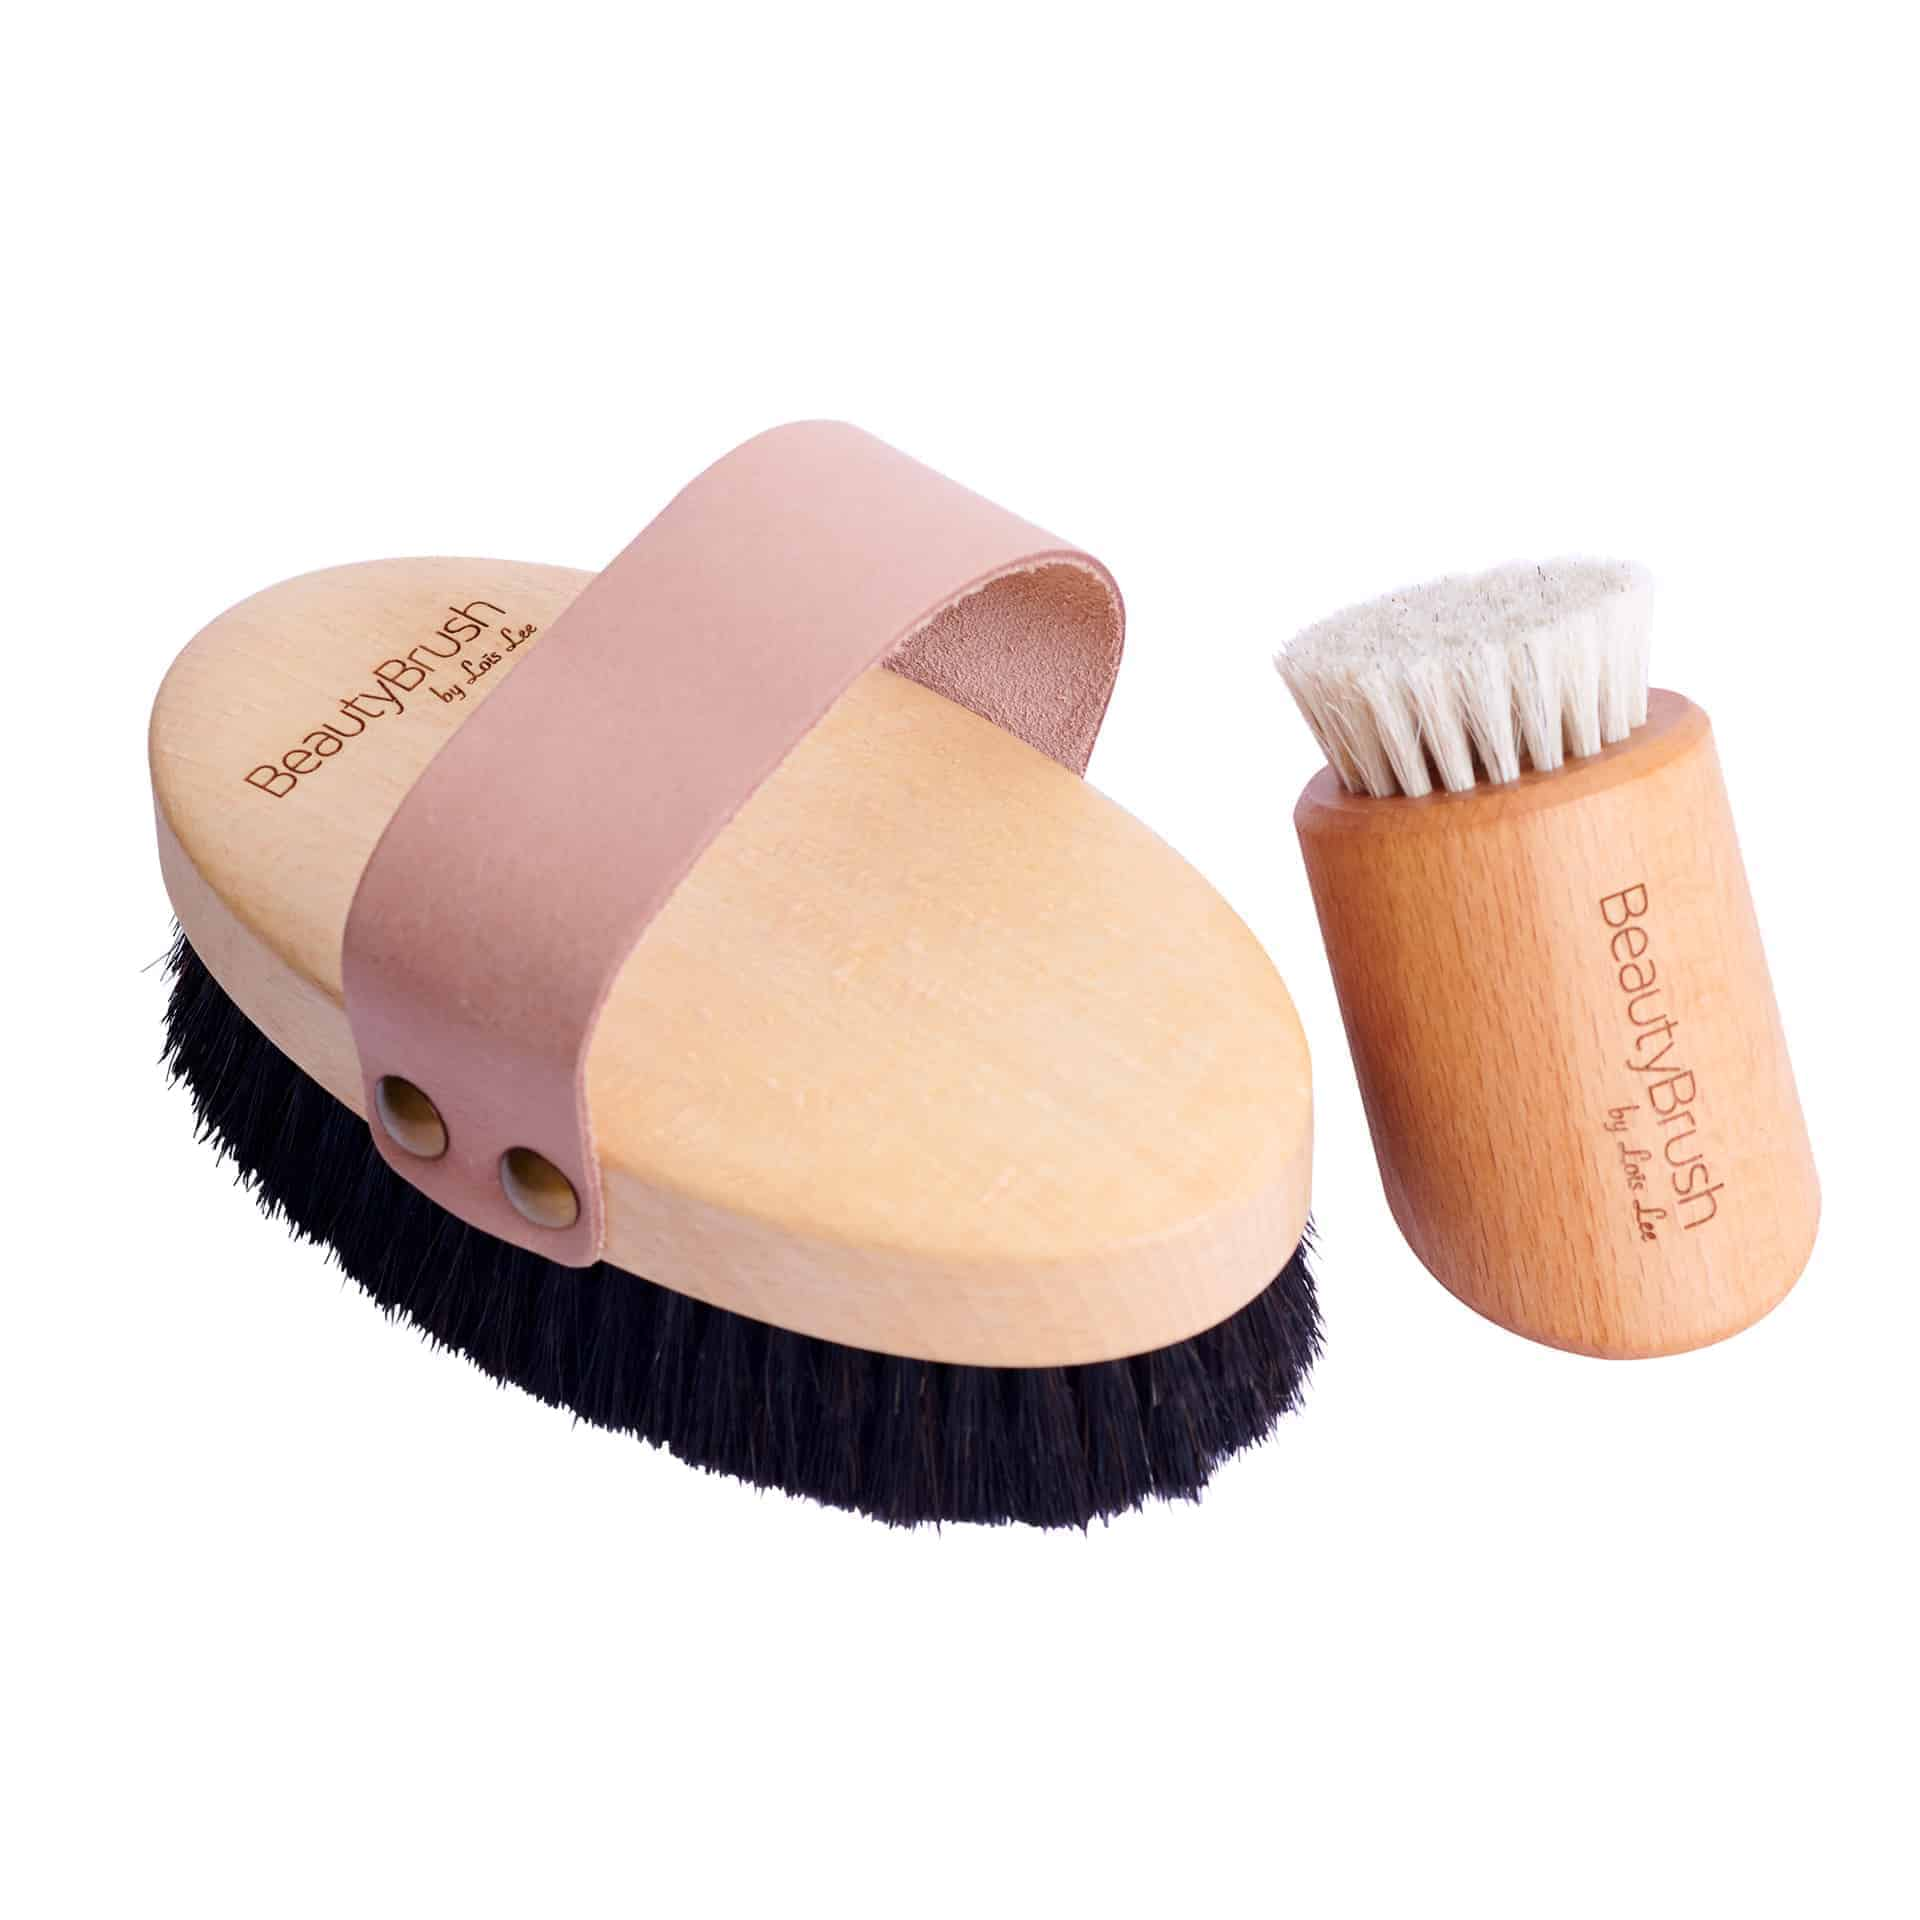 BeautyBrush set Lois Lee Pure Skinfood